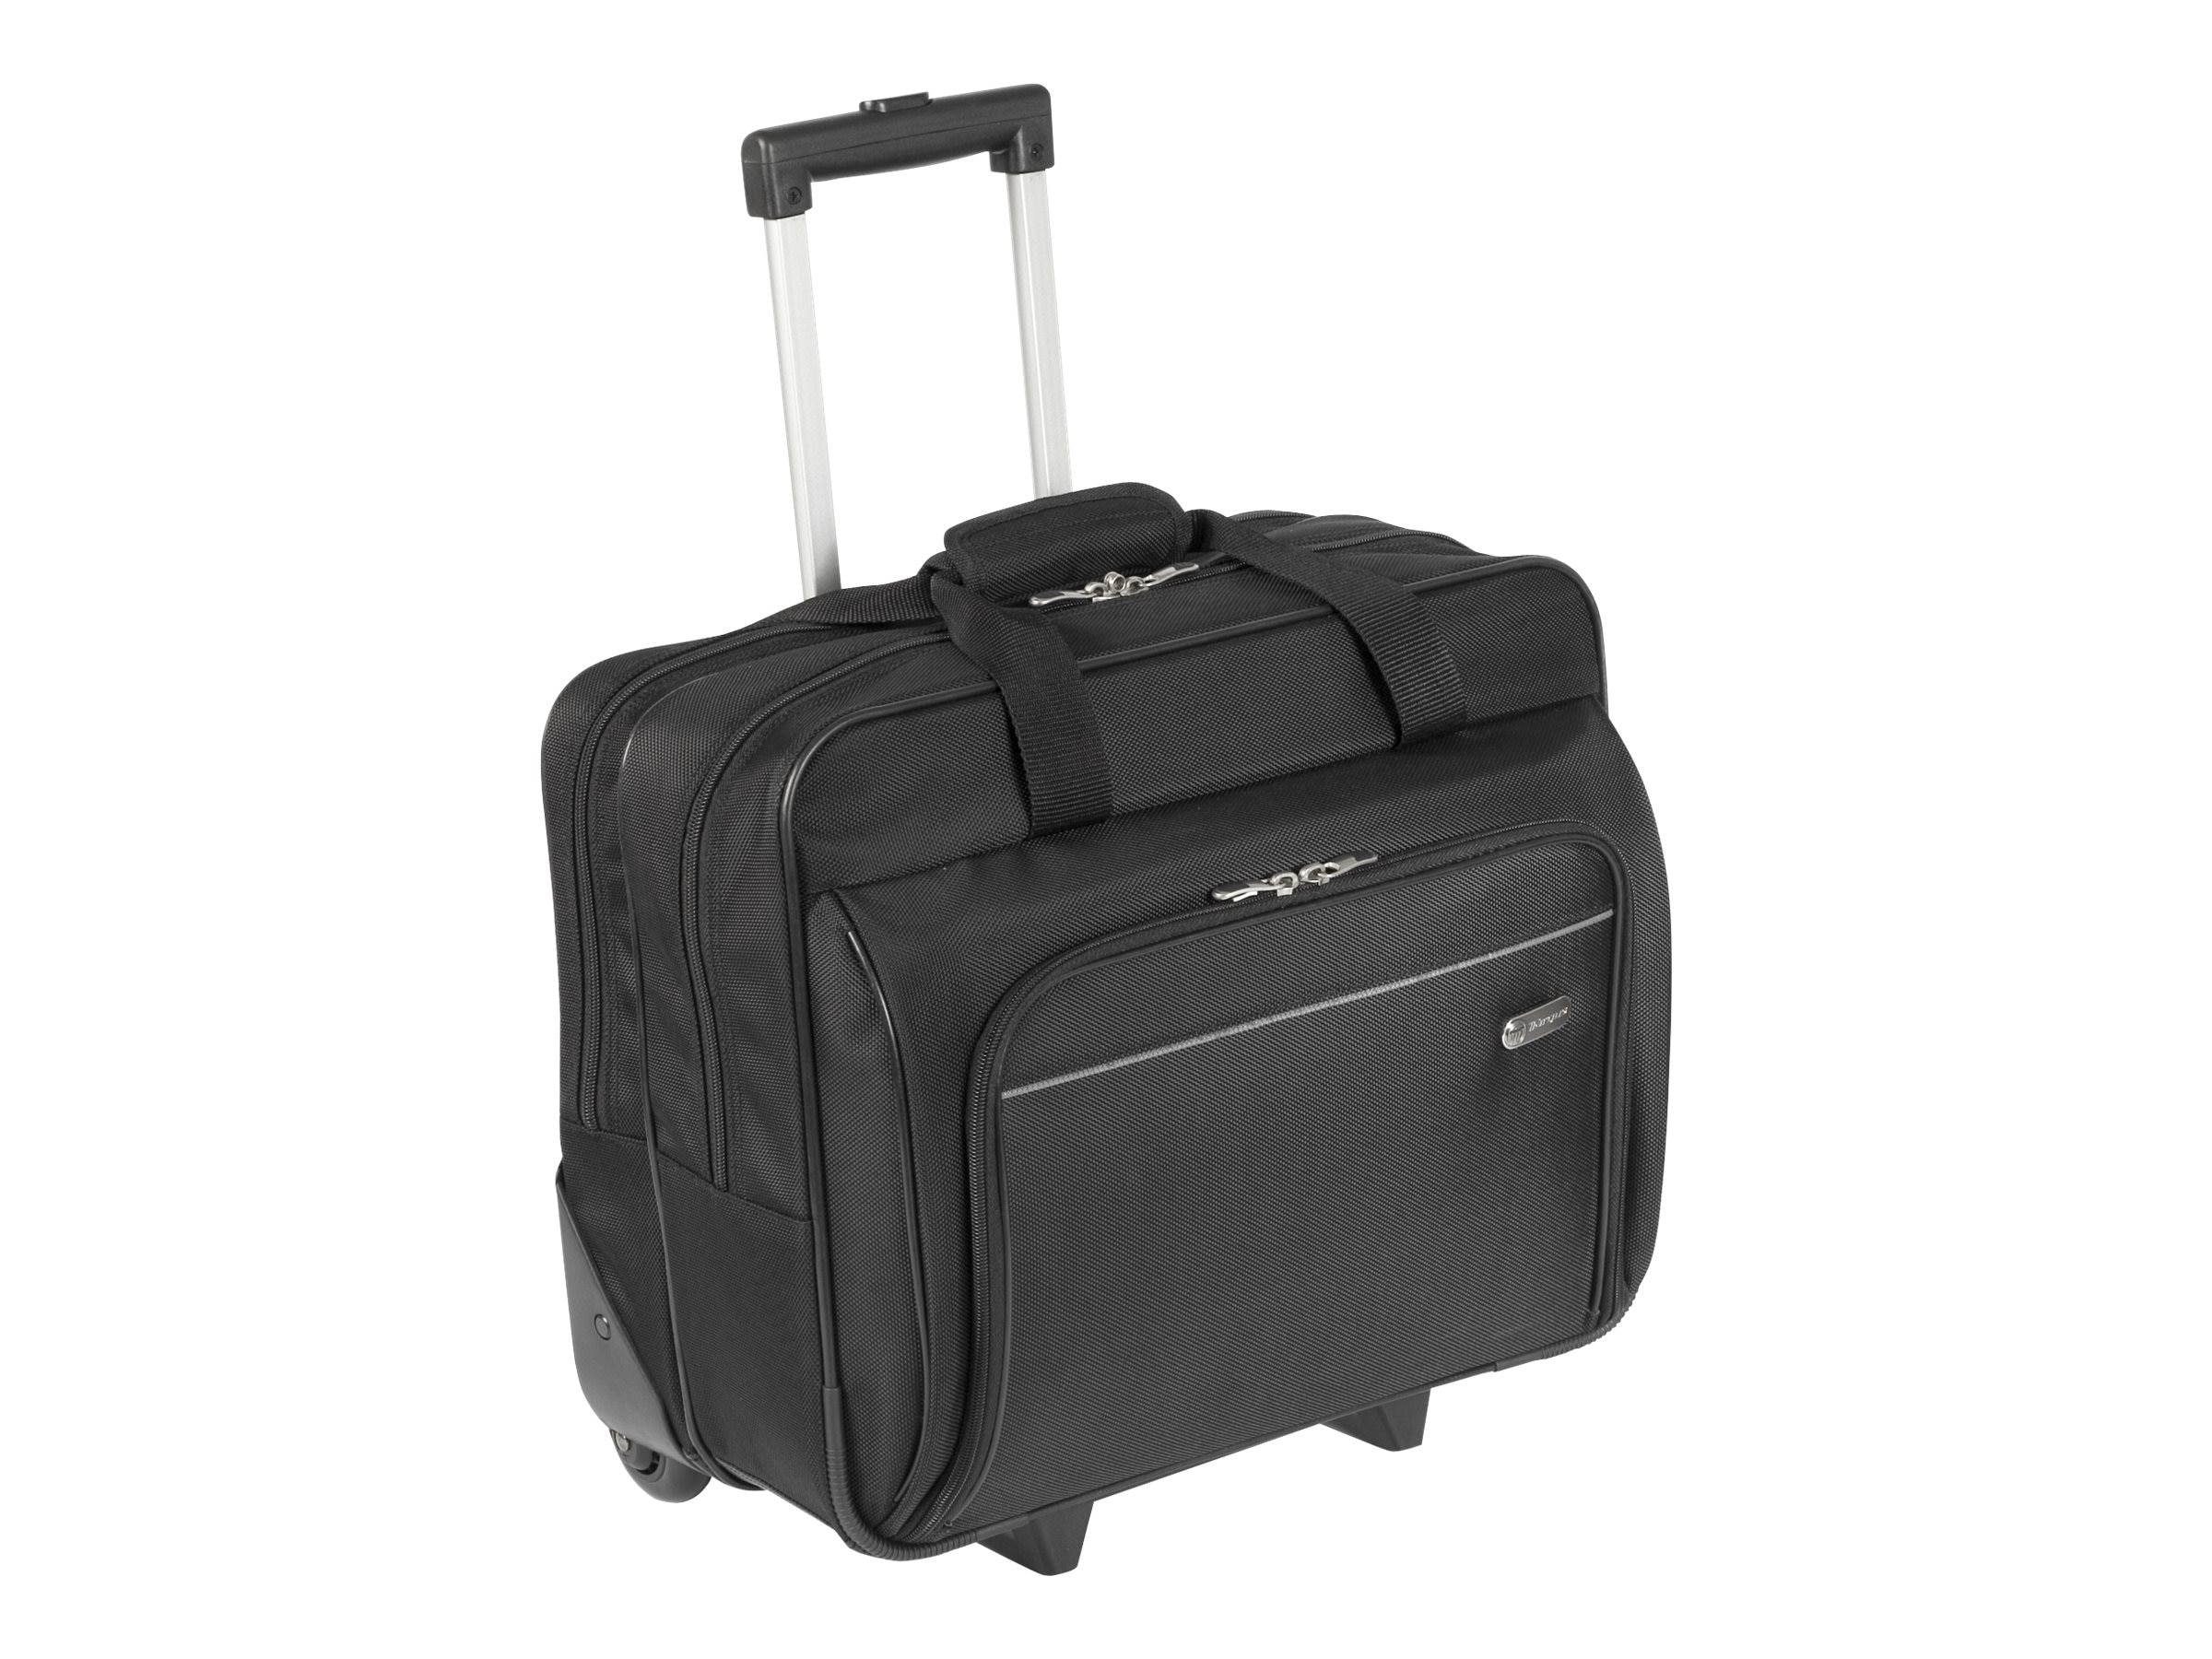 Lenovo Rolling Case for 16 Laptop, Targus, Black